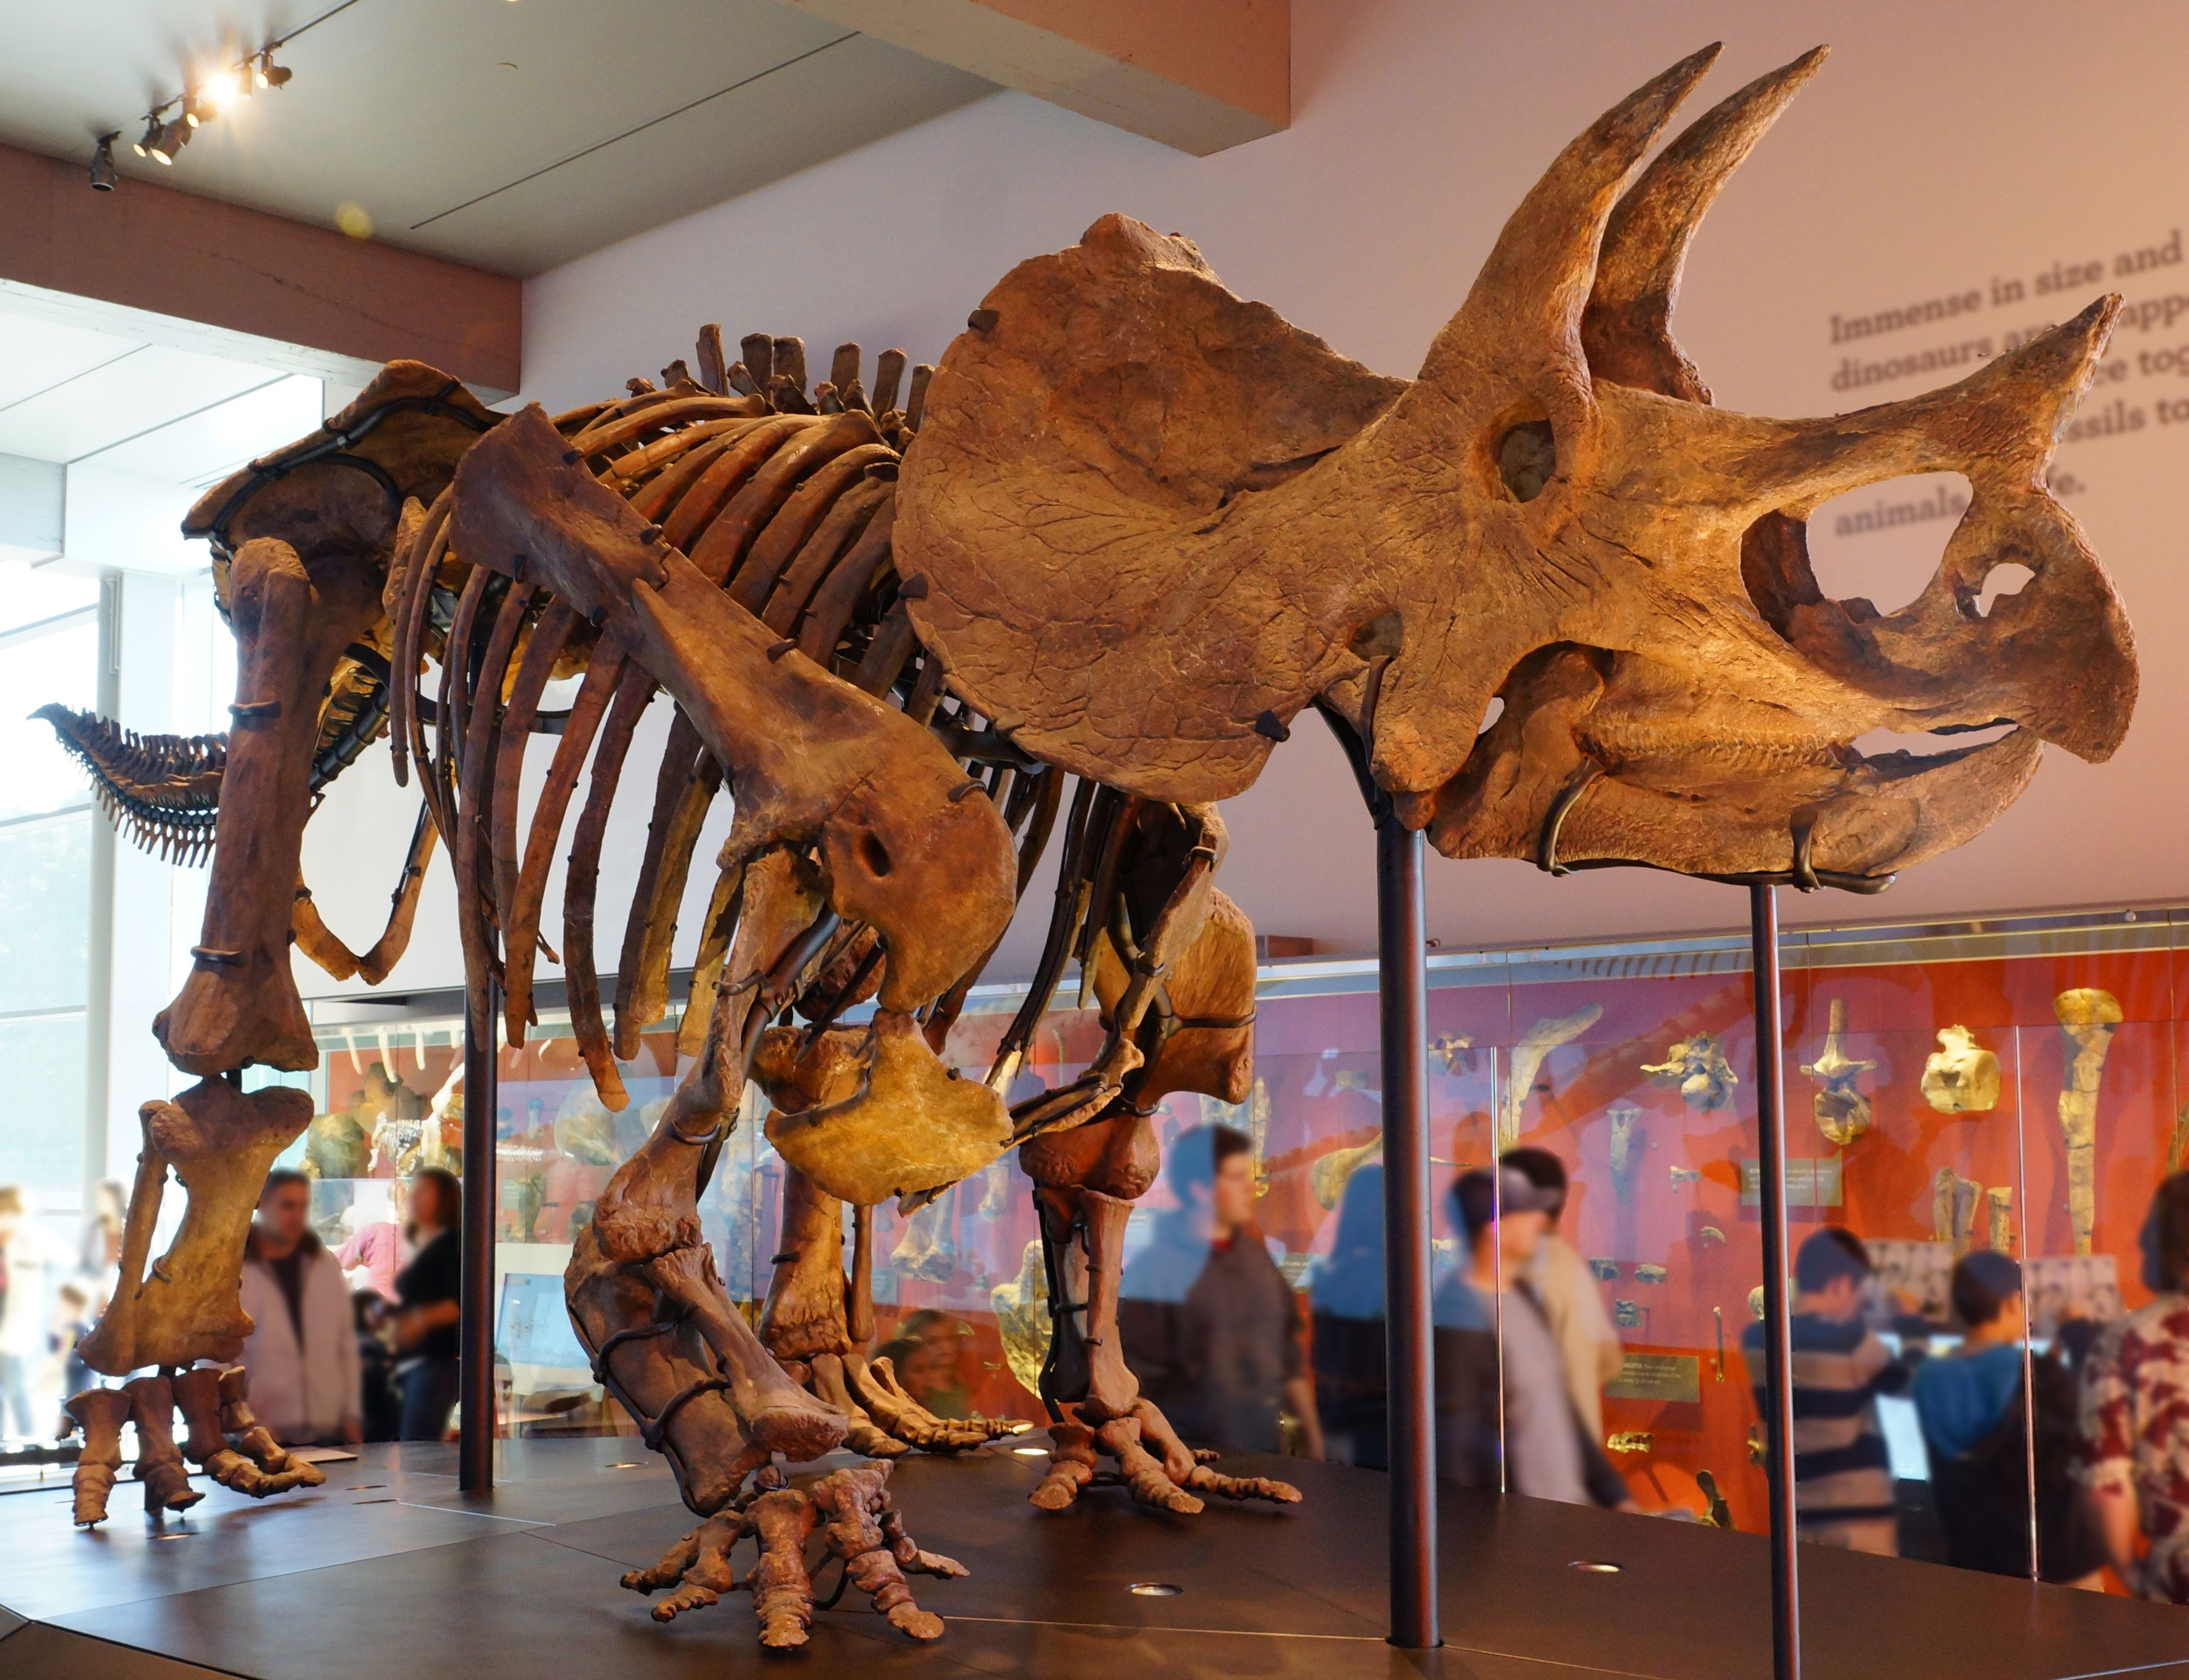 Triceratops skeleton at the Los Angeles Natural History Museum.